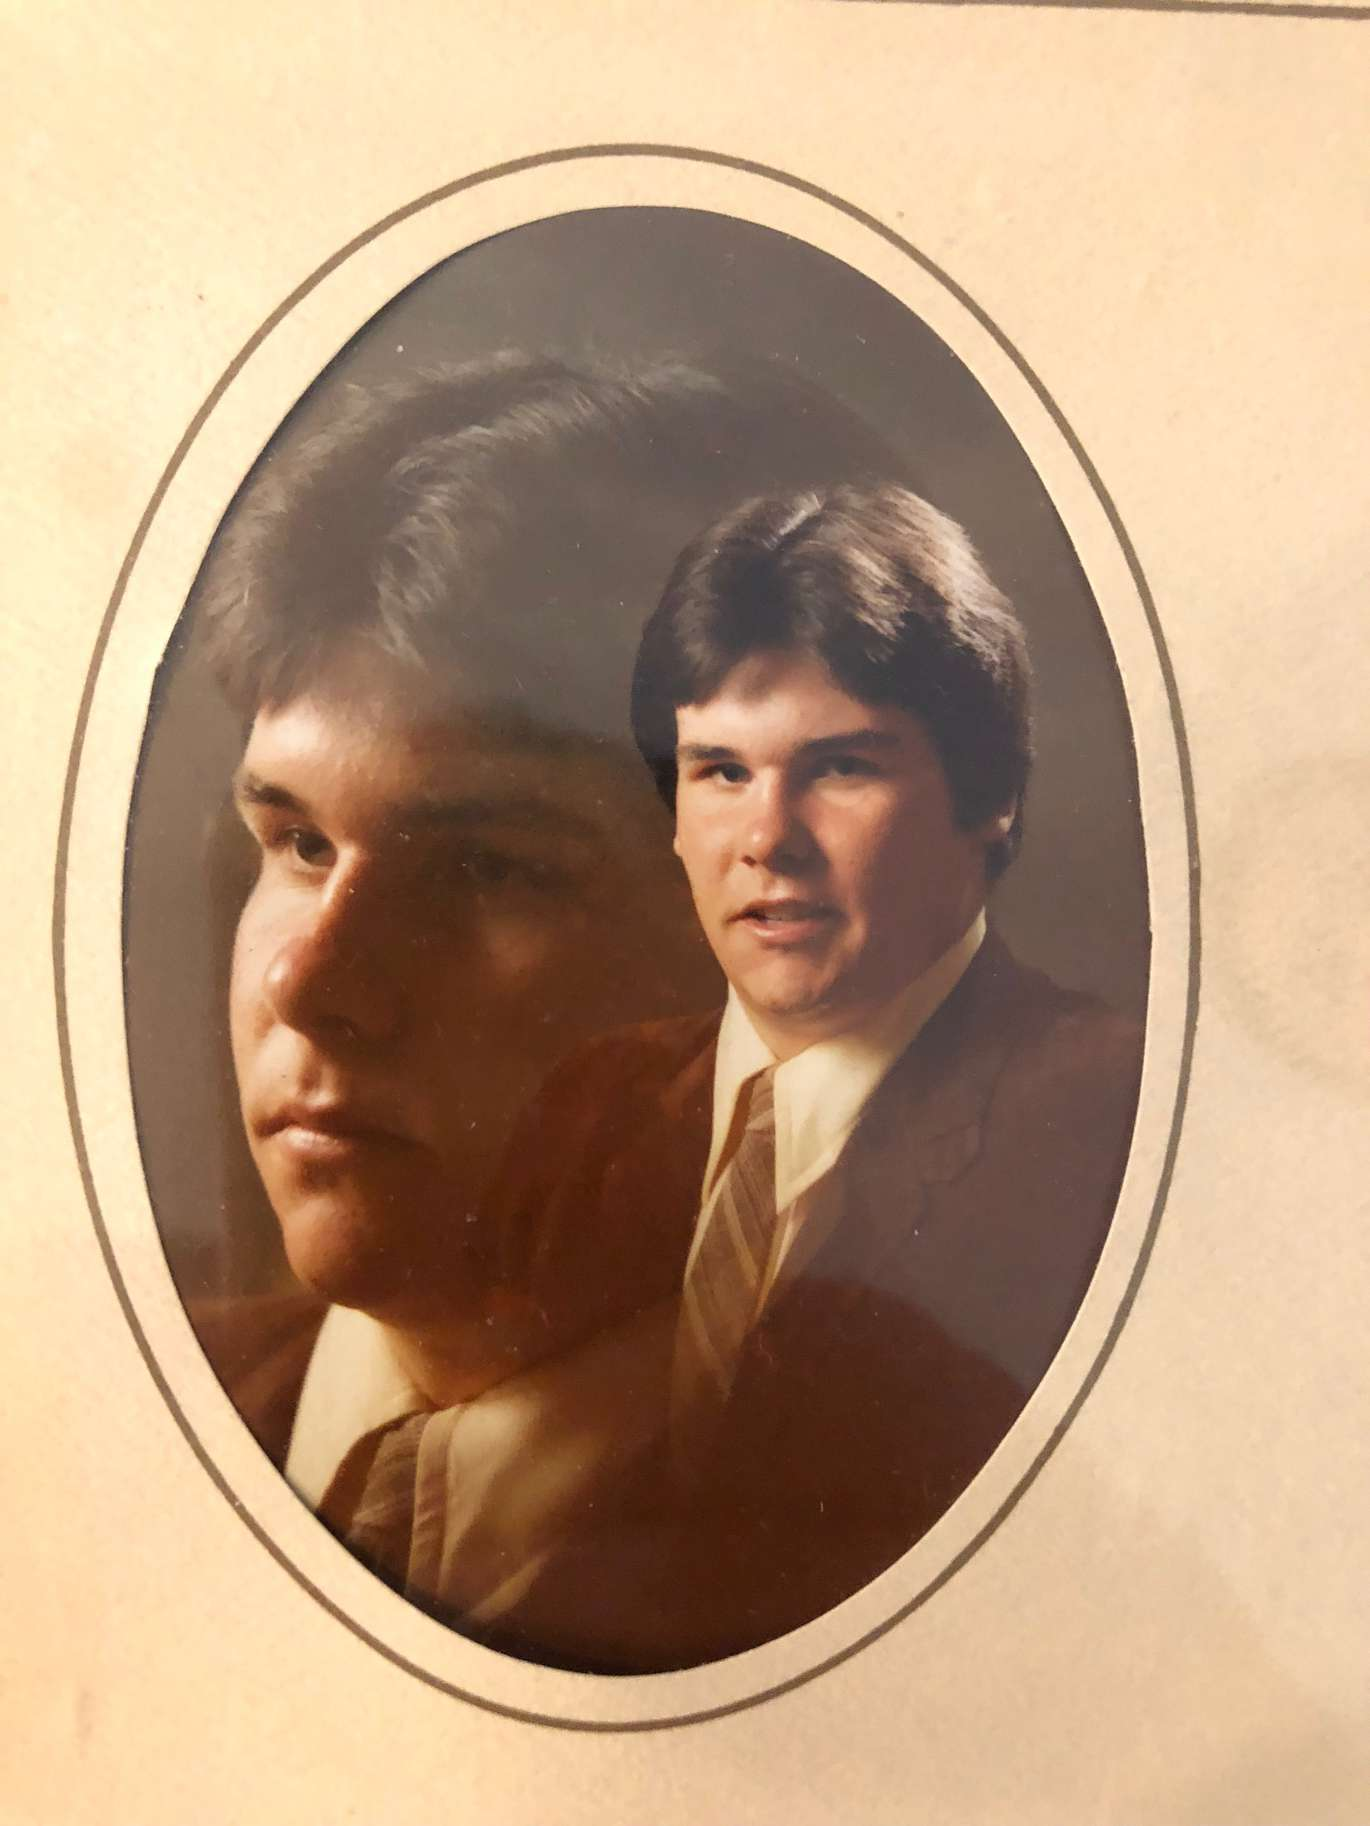 Todd Clem, who legally changed his name to Bubba the Love Sponge during his run for Pinellas County sheriff so that his radio name would appear on the ballot, seen in an undated photo from high school in the early 1980s. [Courtesy of Jane Edmond]